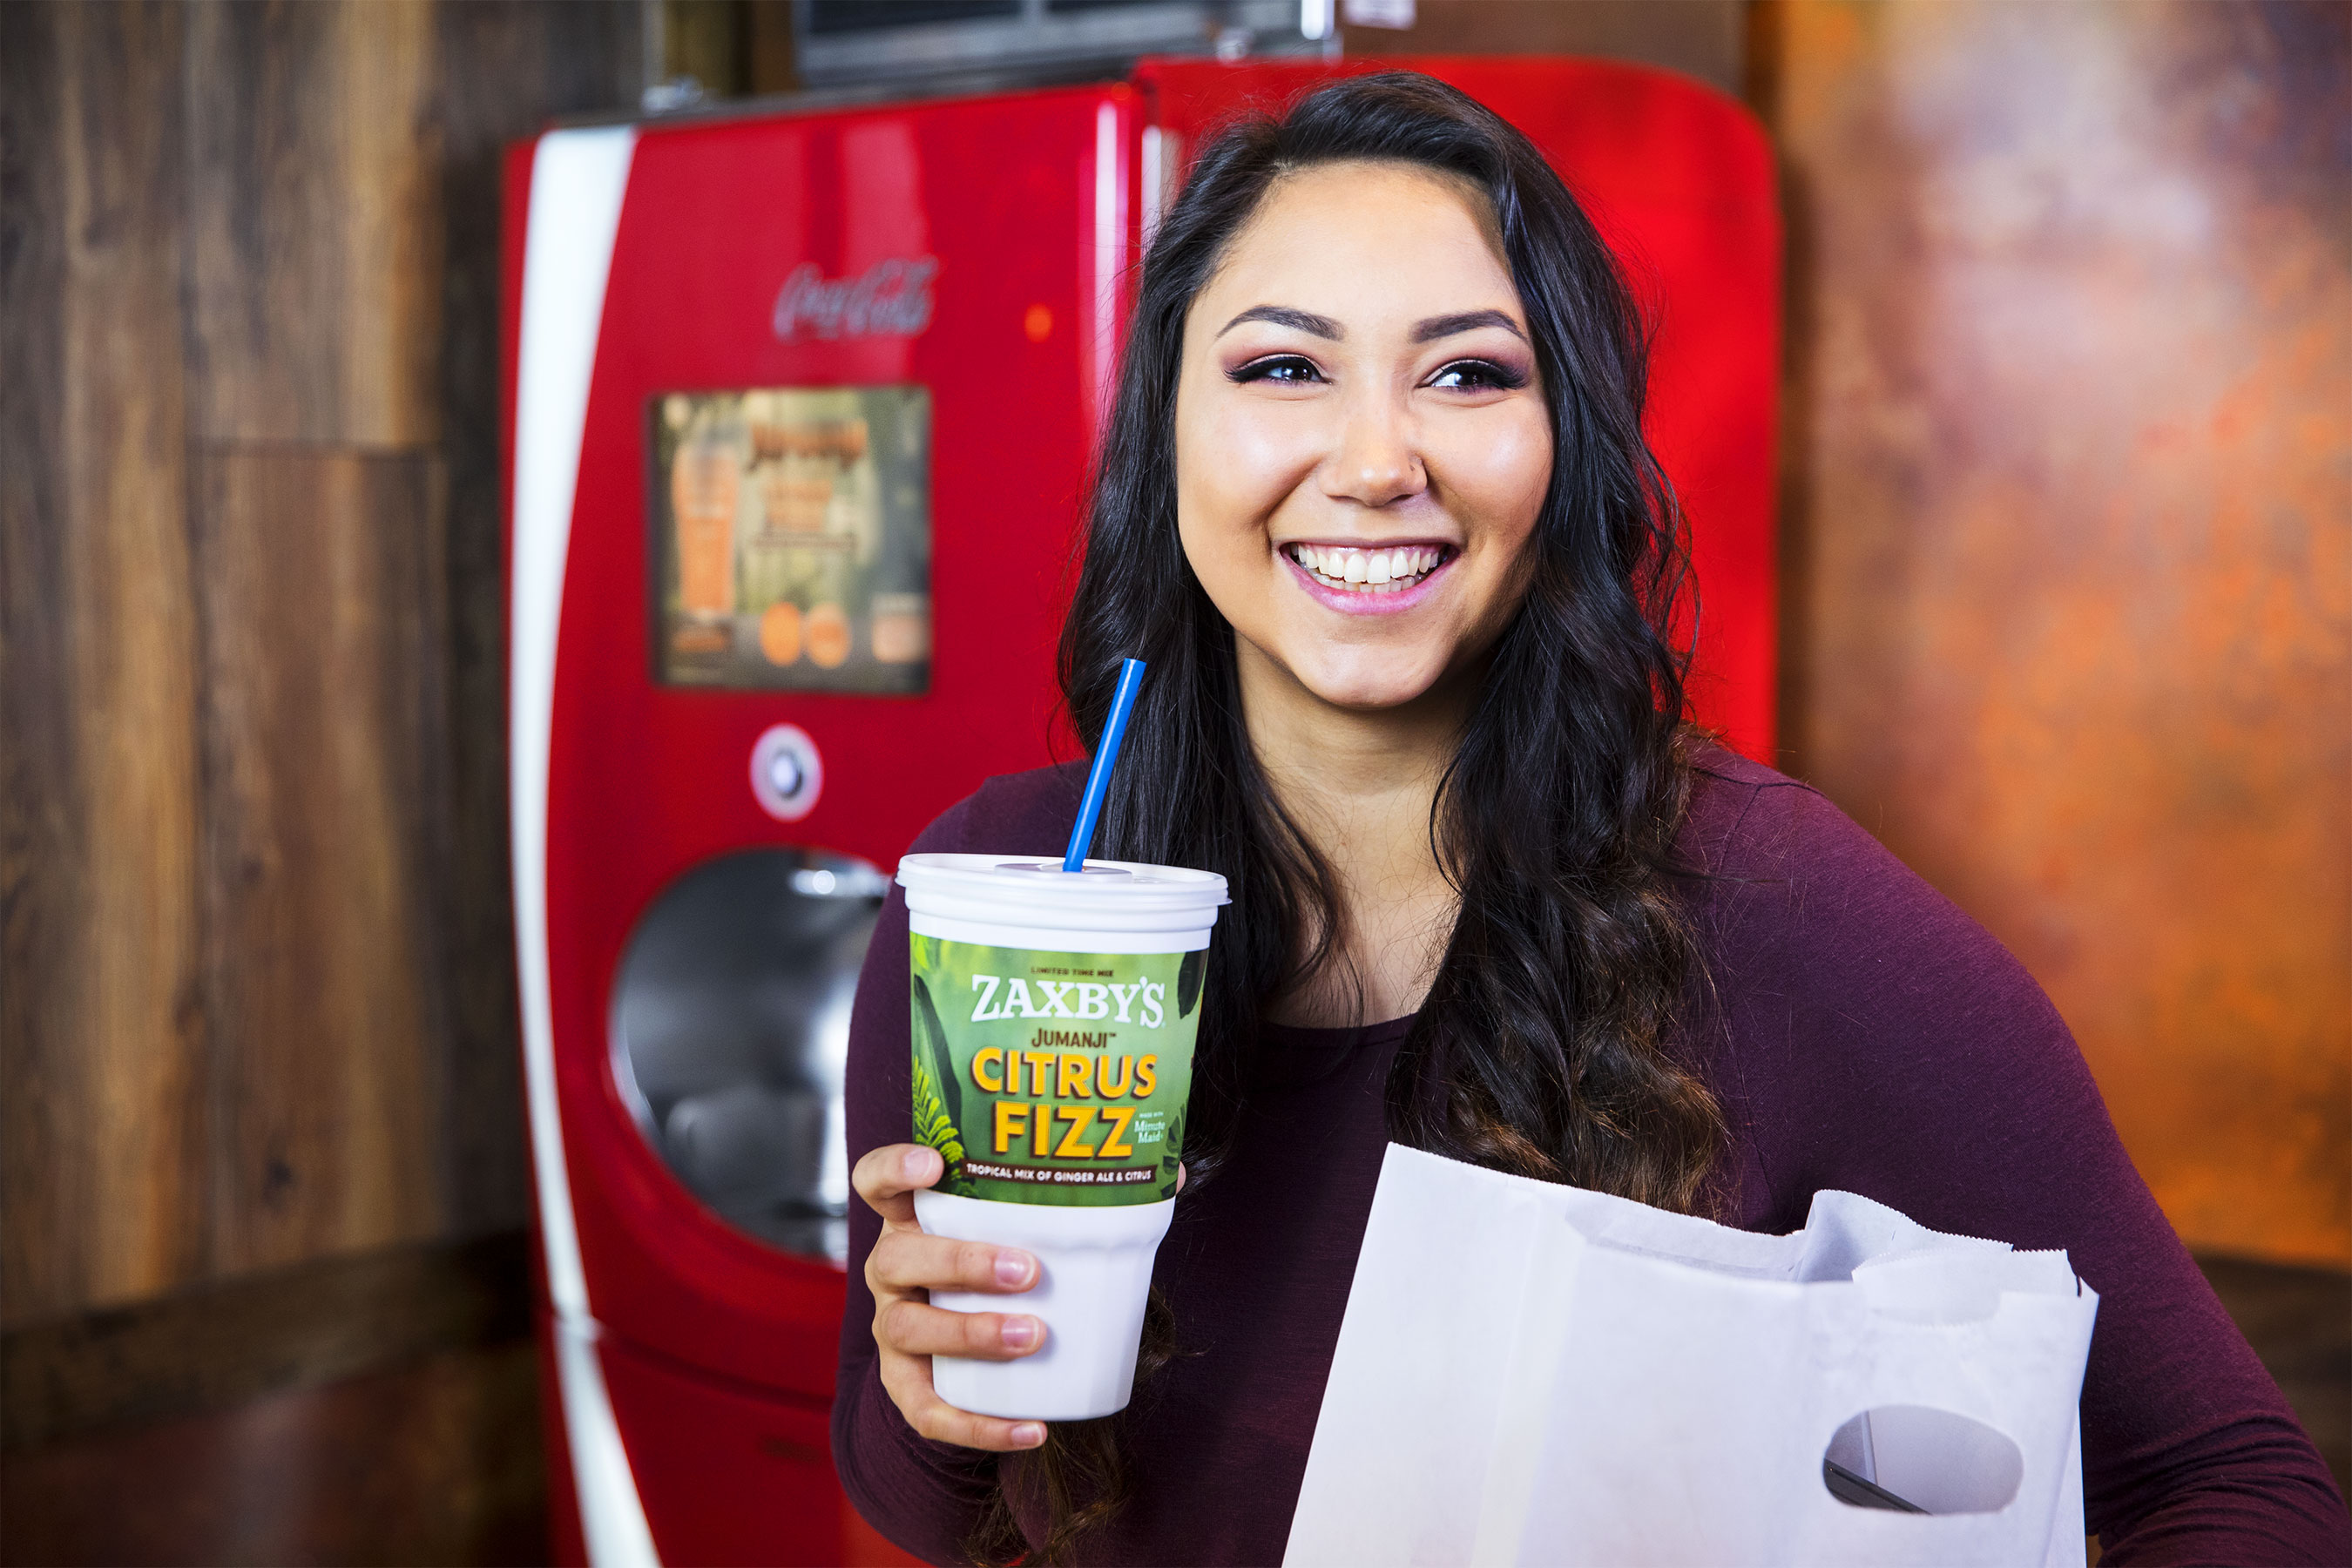 Customers looking for a movie-themed drink may try the custom limited-time Coca-Cola Freestyle Jumanji Citrus Fizz, also available in Lite. Made with Minute Maid Orange and Seagram's Ginger Ale, the beverage has a sparkling, citrusy orange taste that pairs with either of the new sandwiches.